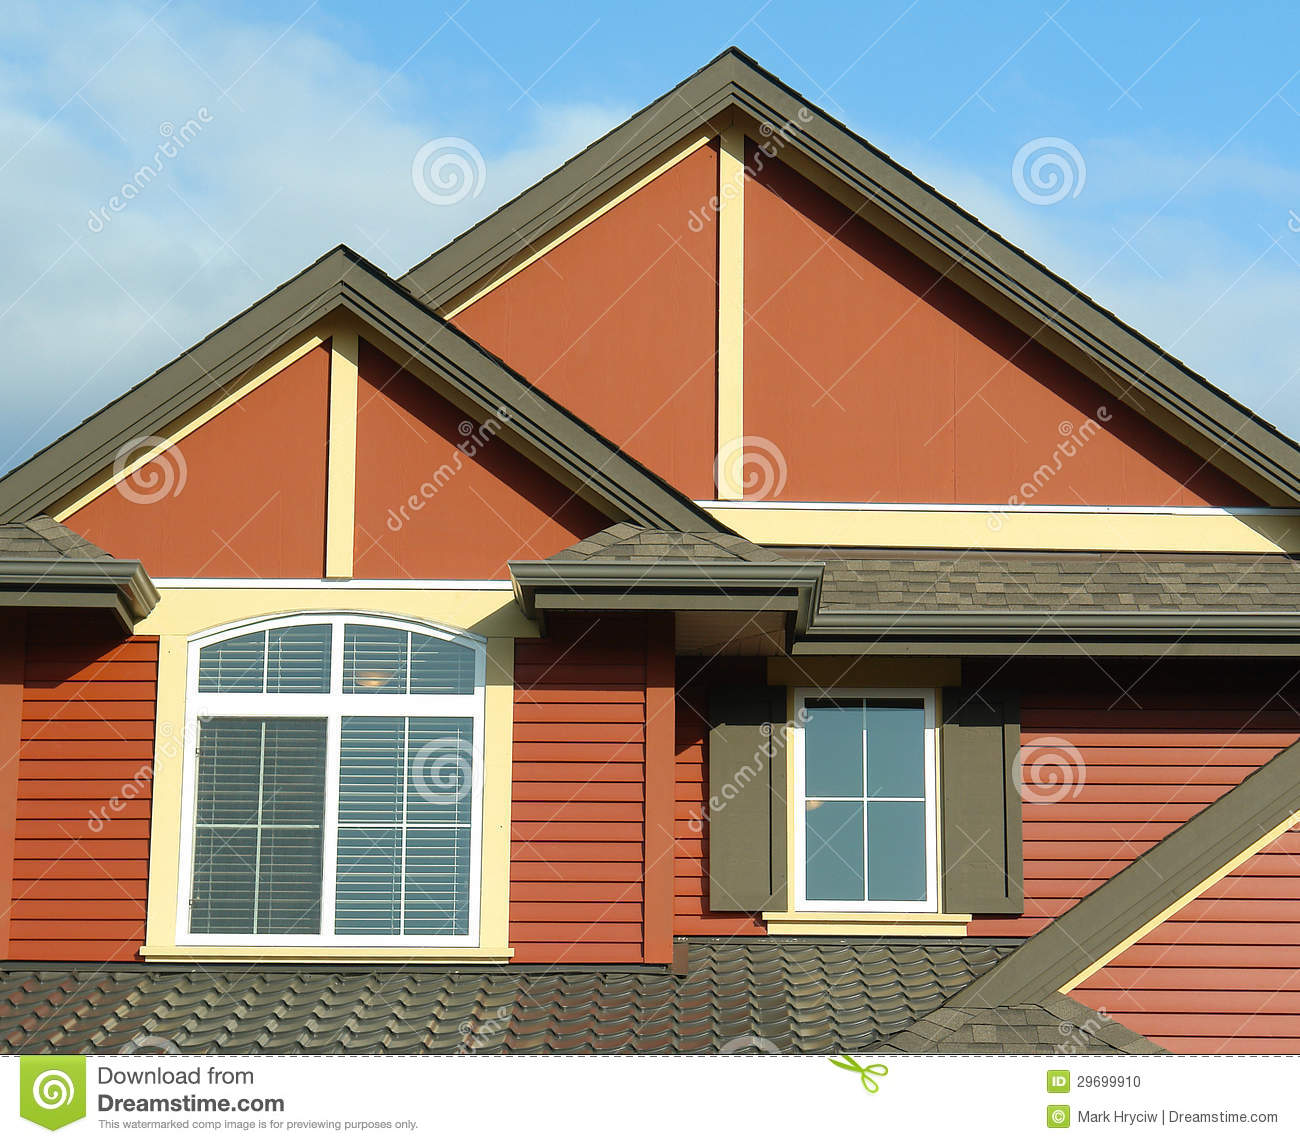 House Exterior: House Home Exterior Roof Details Stock Photo